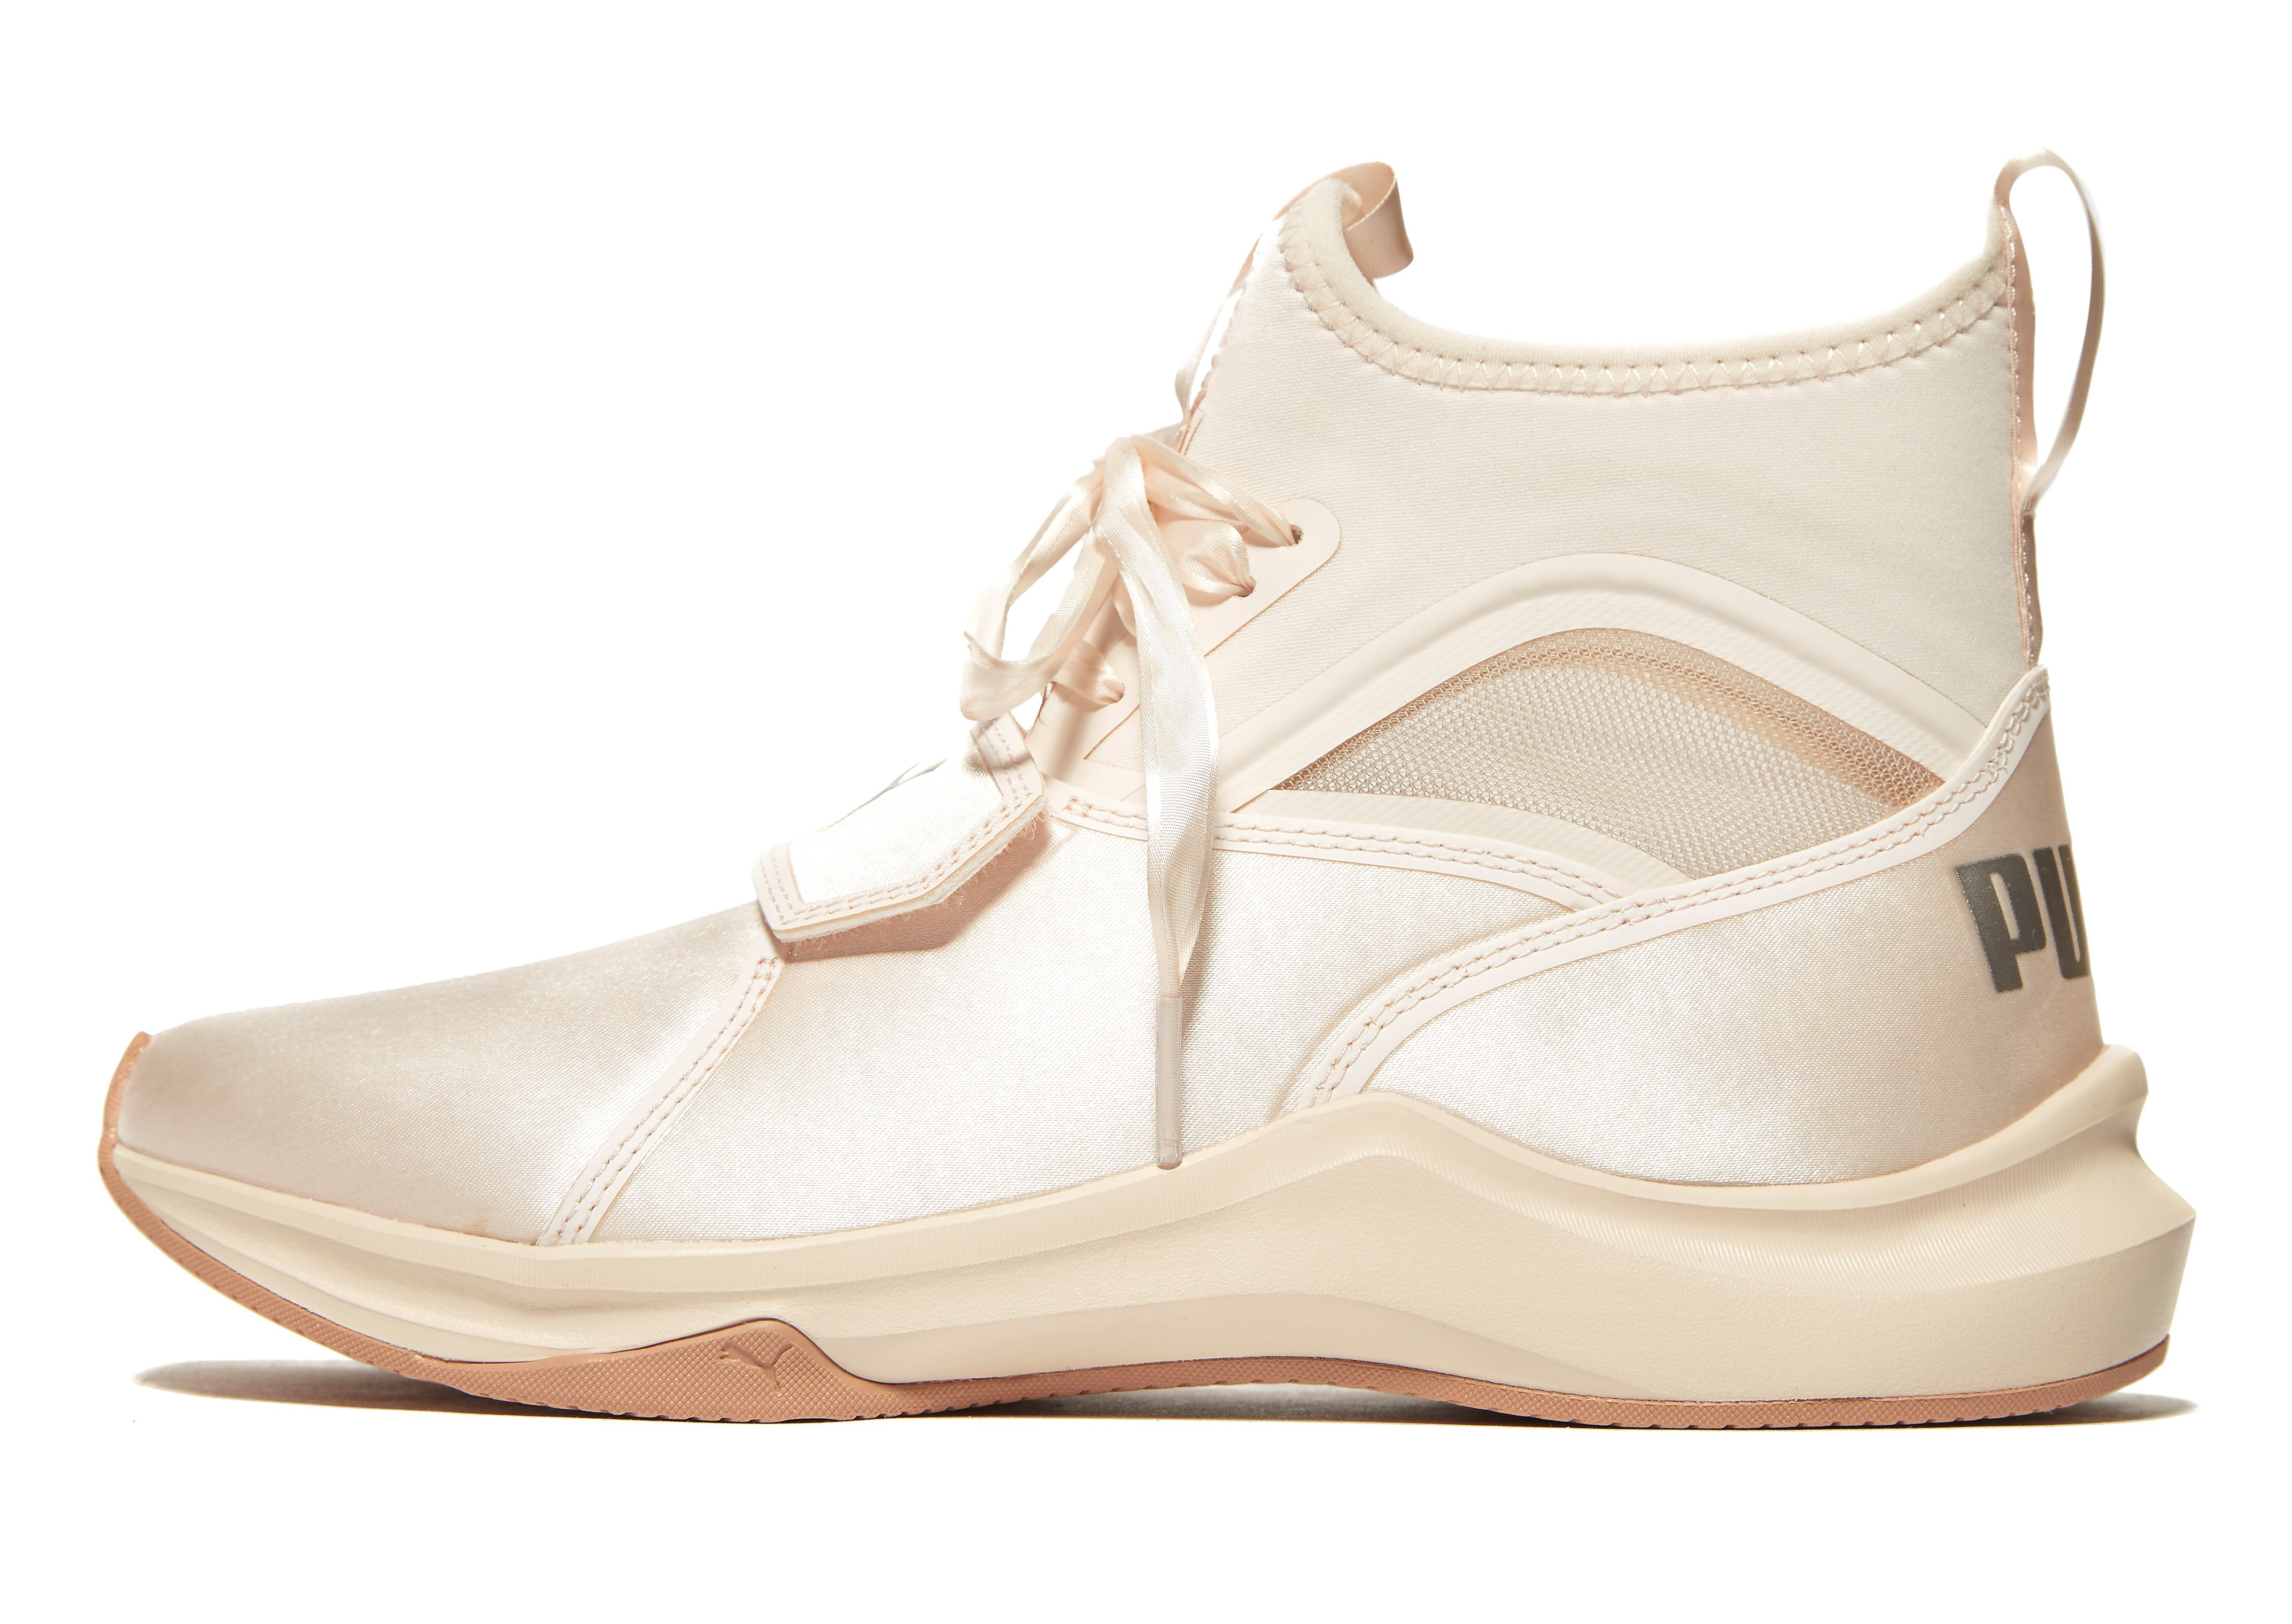 PUMA En Pointe Phenom Women's